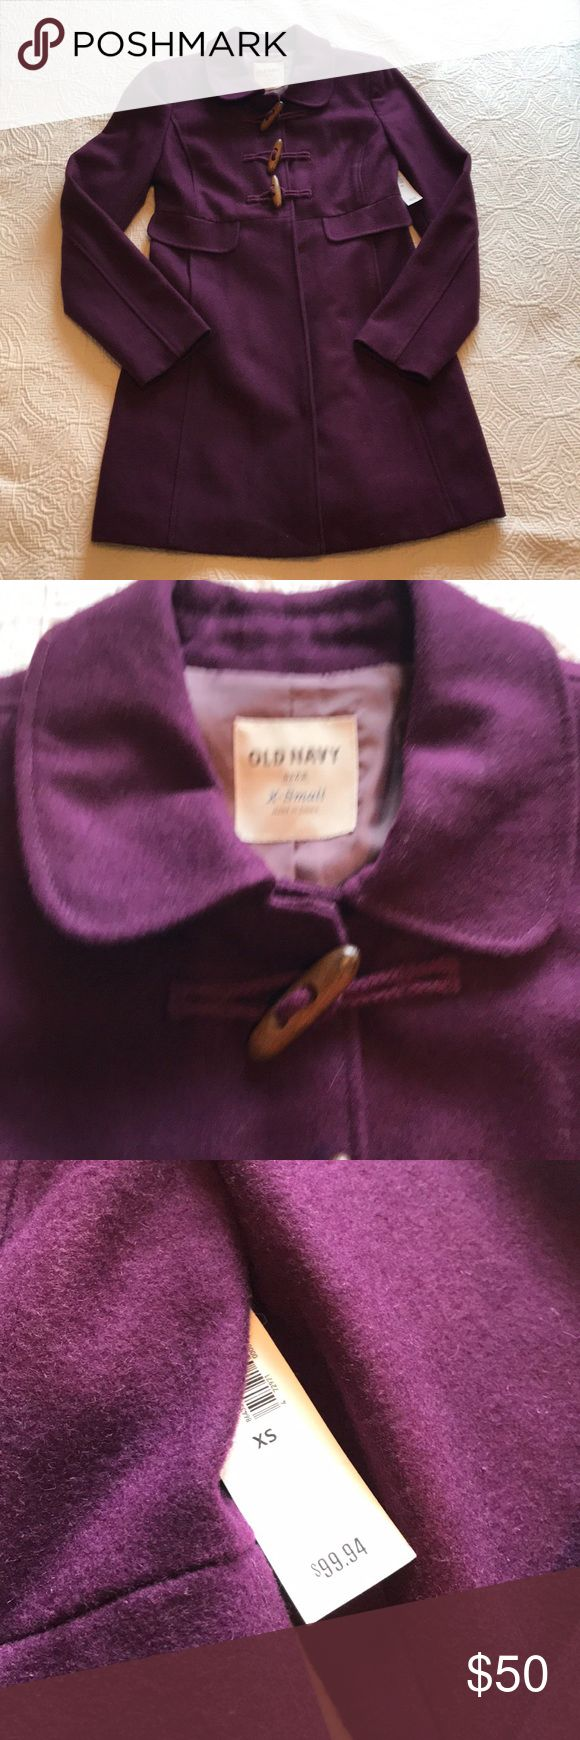 """NWT [old navy] Eggplant Wool Blend Toggle Coat XS NWT [old navy] Eggplant Wool Blend Toggle Button Coat XS 🔹So beautiful and warm!! 🔹underarm to underarm = 17"""" 🔹length center back neck to hem = 30.5"""" 🔹Lined 🔹toggle buttons too portion 🔹invisible snaps bottom portion ✅Offers Welcome w/Offer Button 🚫Trade 🚫PP 💰30%OffBundle 📦Ships1Day. Old Navy Jackets & Coats Pea Coats"""